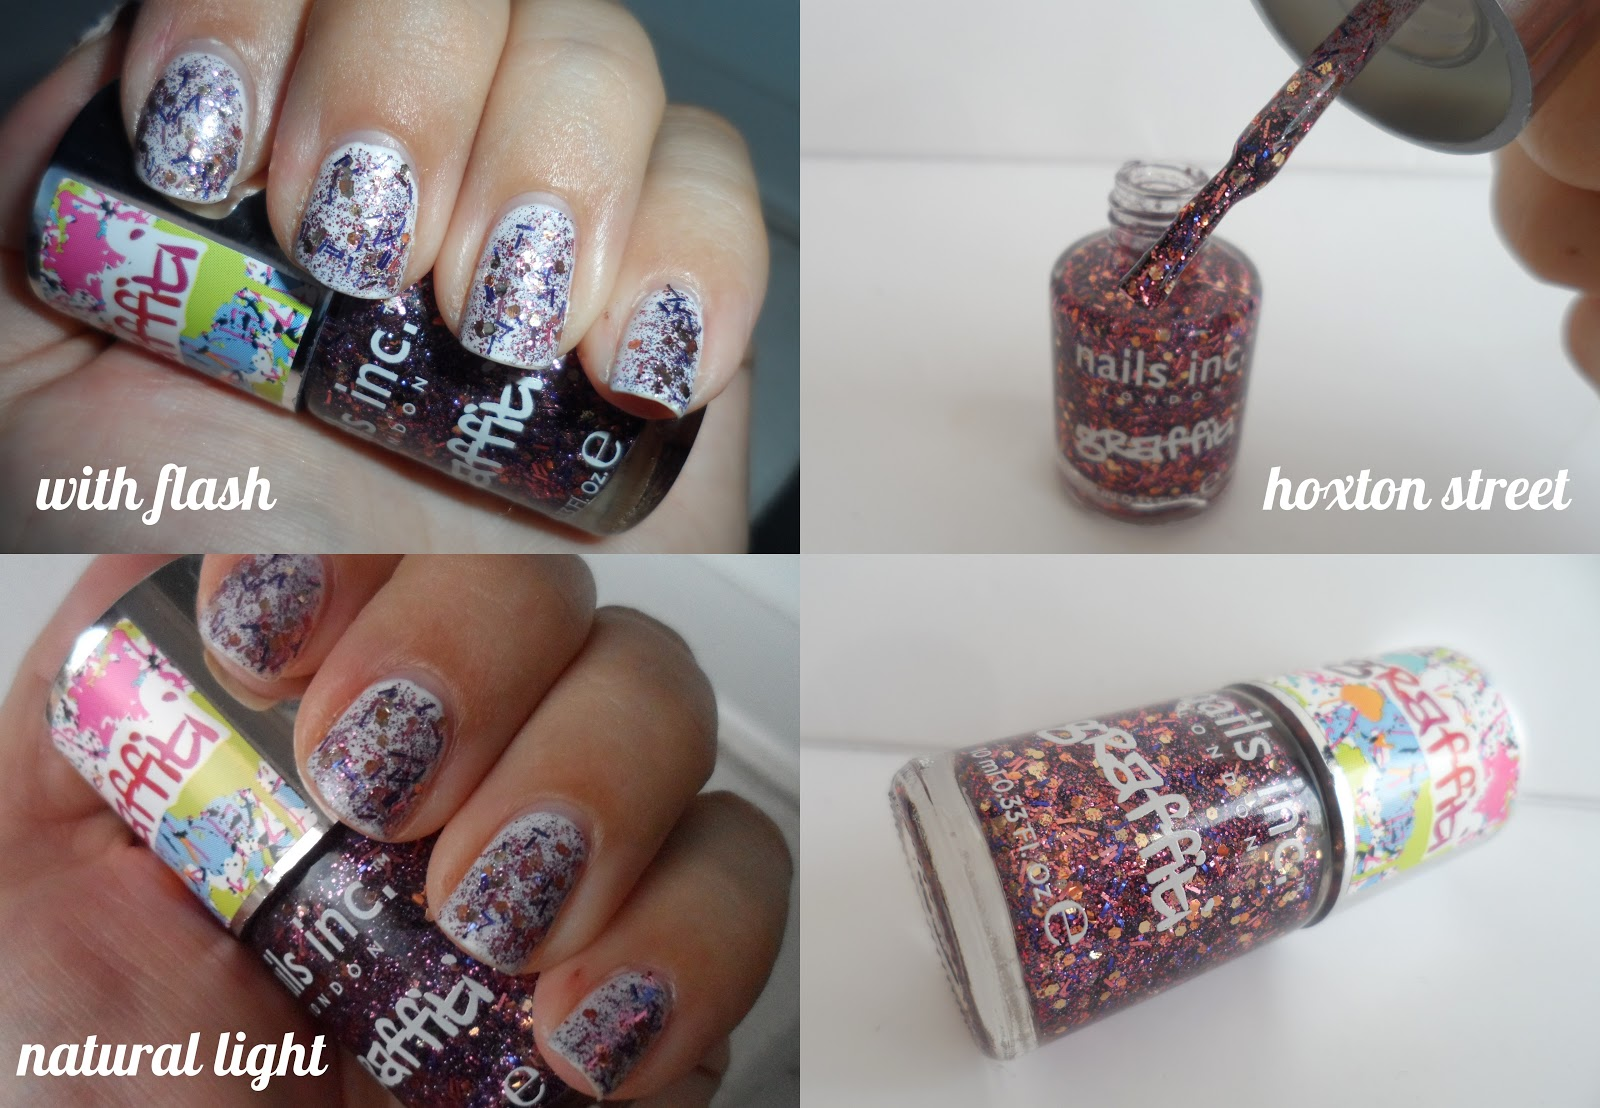 Nails Inc graffiti effect glitter nail polishes in camden lock and ...